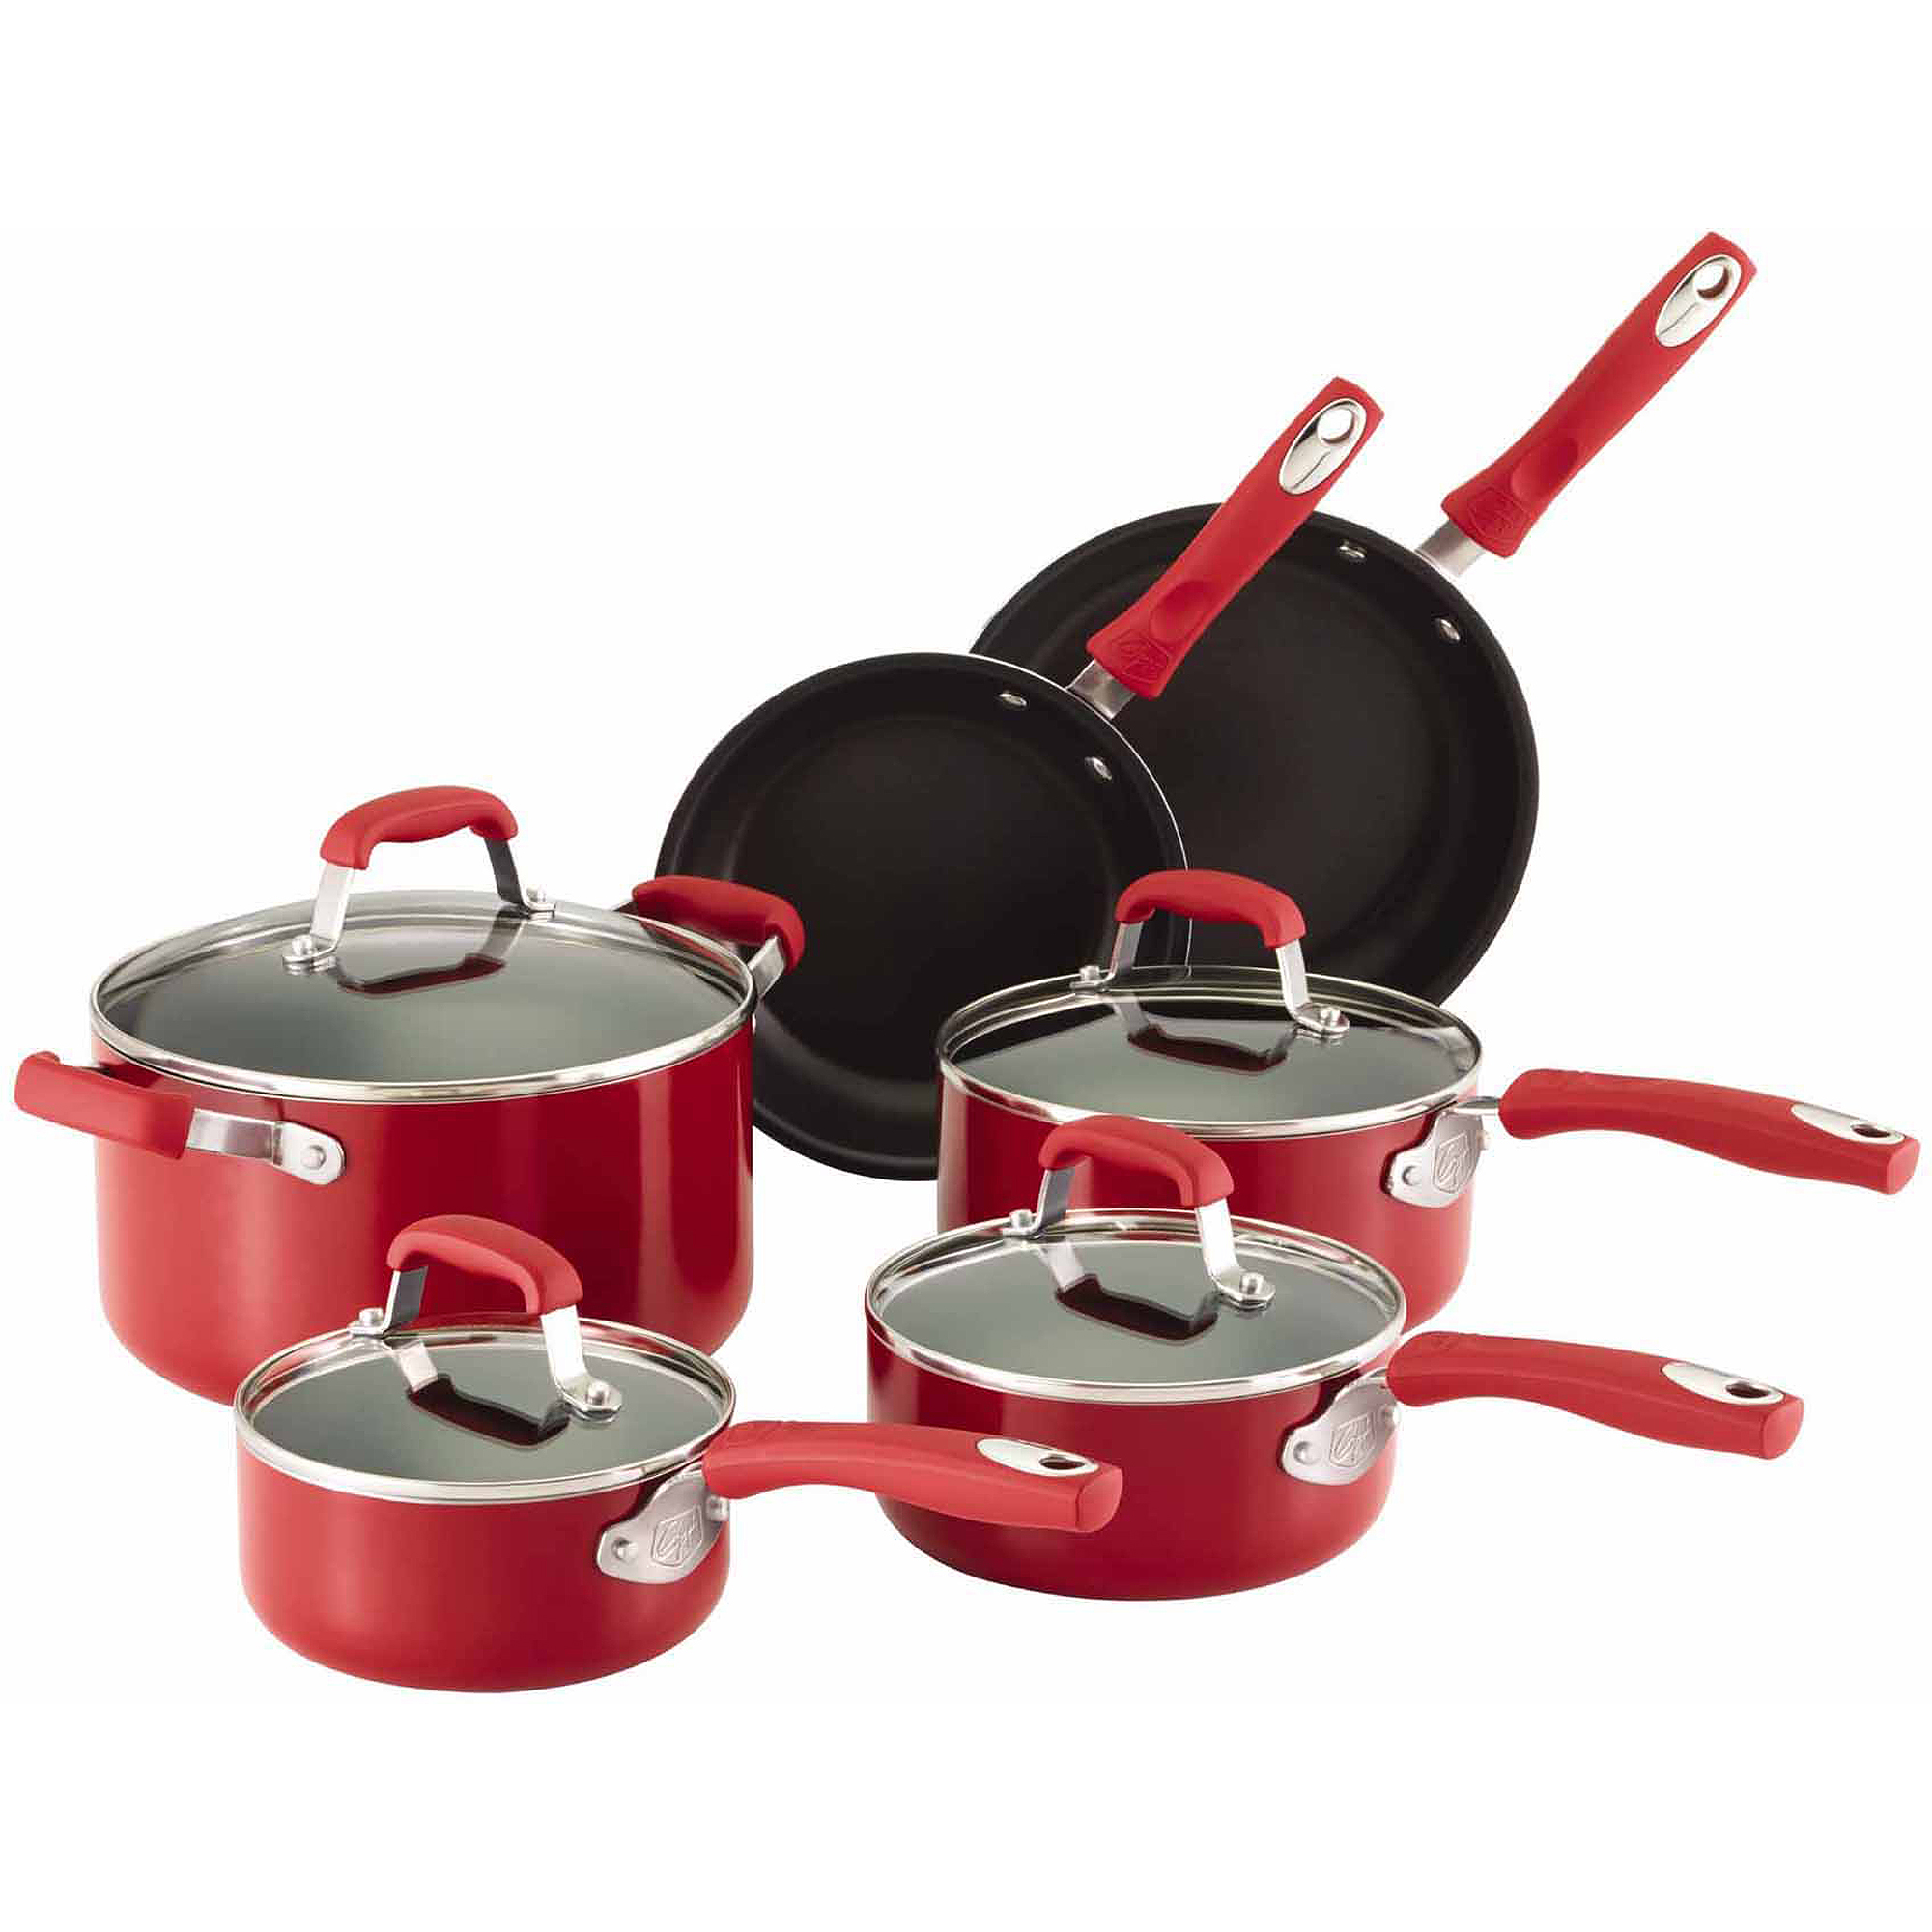 Guy Fieri Nonstick 10-Piece Cookware Set